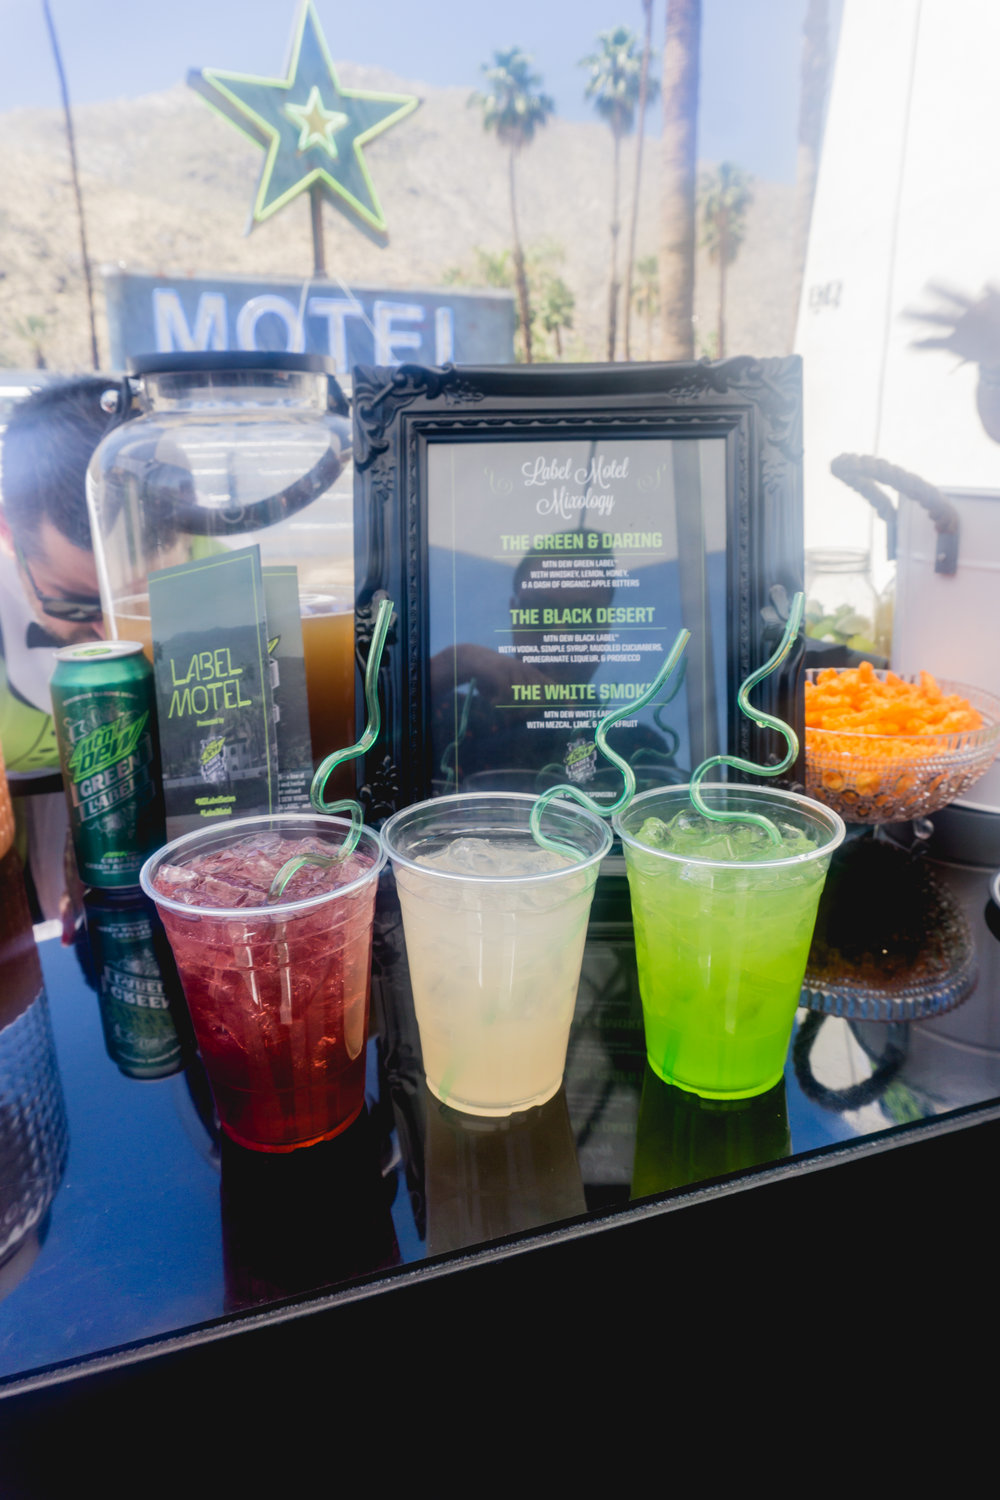 All cocktails and food were infused with Mountain Dew's new drinks. They were all tasty!